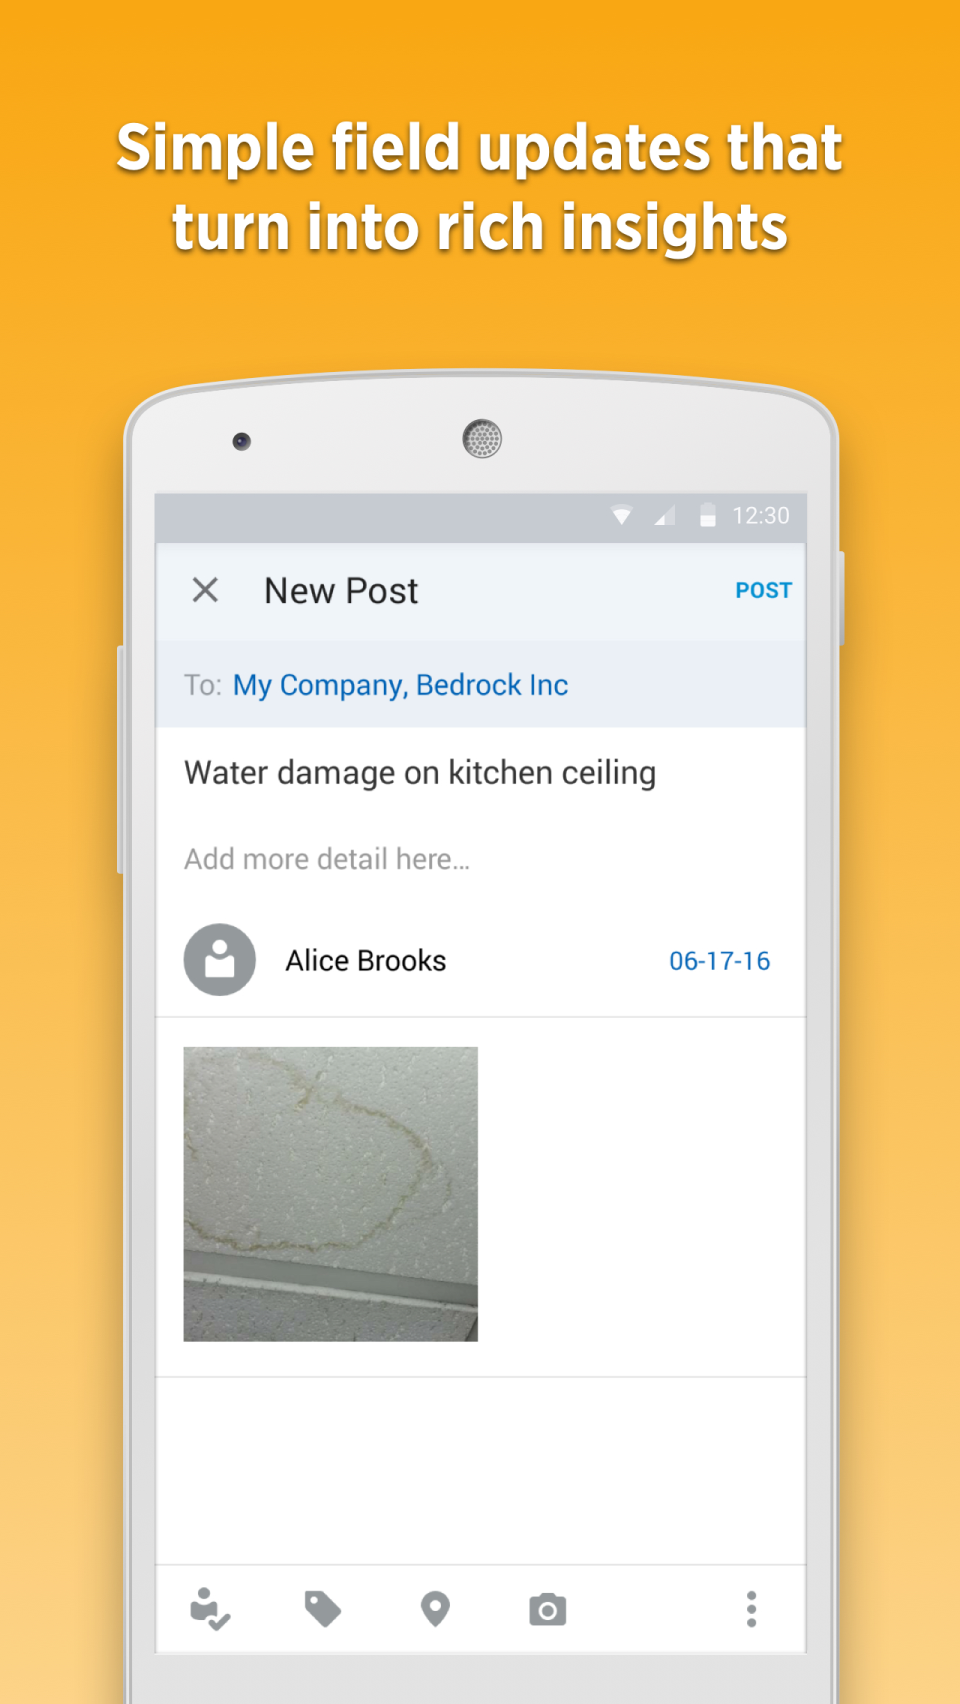 Fieldlens enables users to add photos, videos, and voice recordings to their update posts